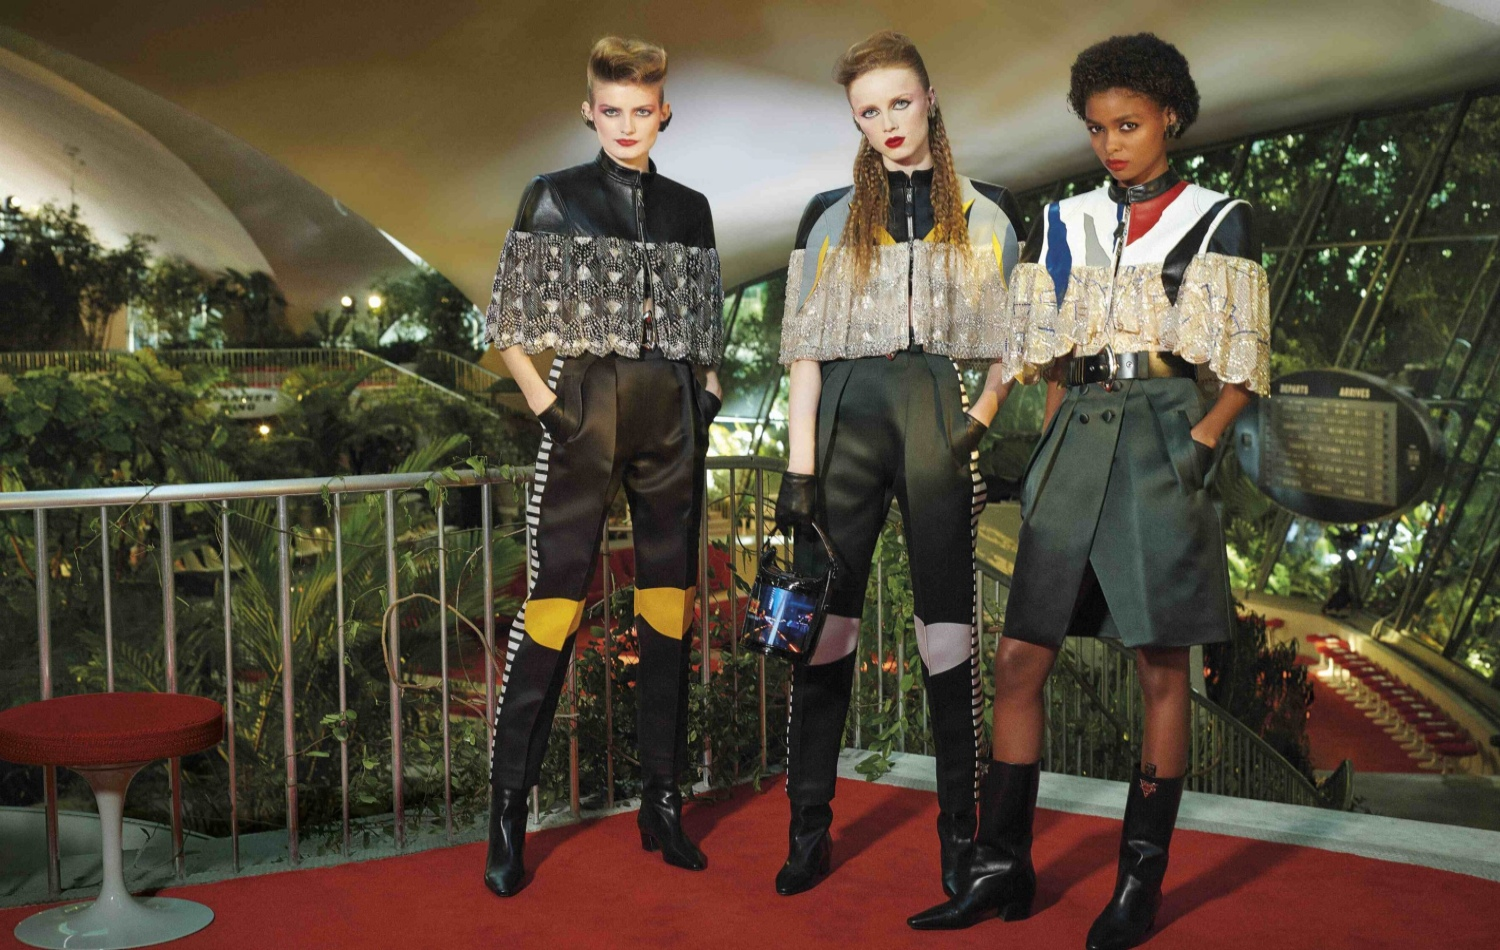 A New Future At Louis Vuitton Cruise '20